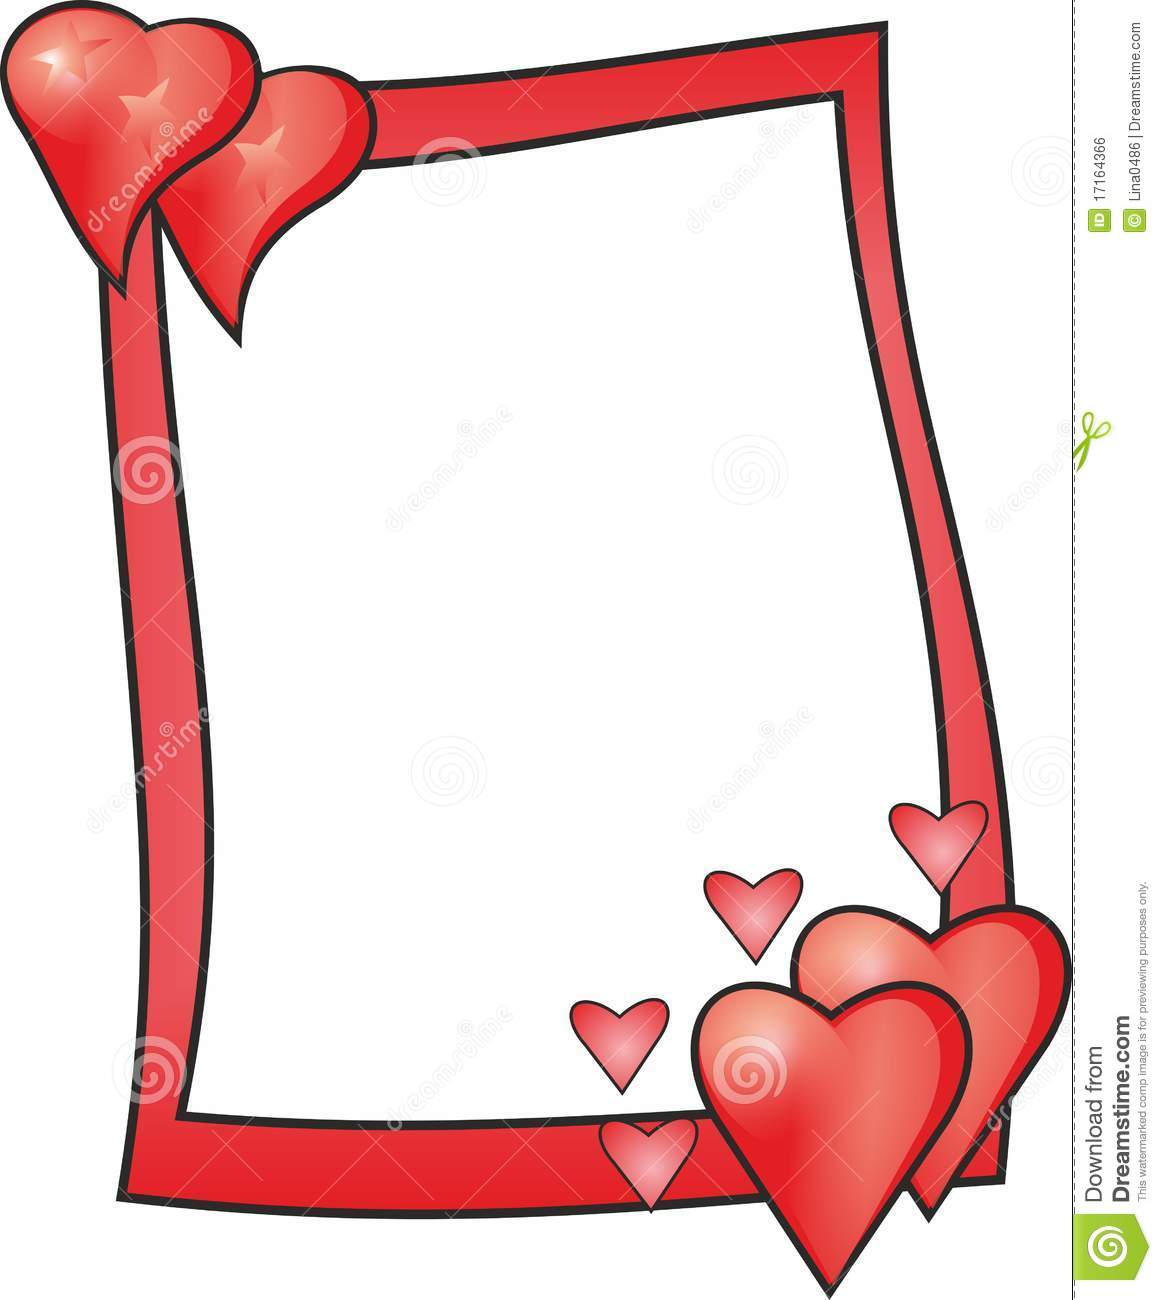 3d Love Red Heart Wallpaper Love Frame Royalty Free Stock Image Image 17164366